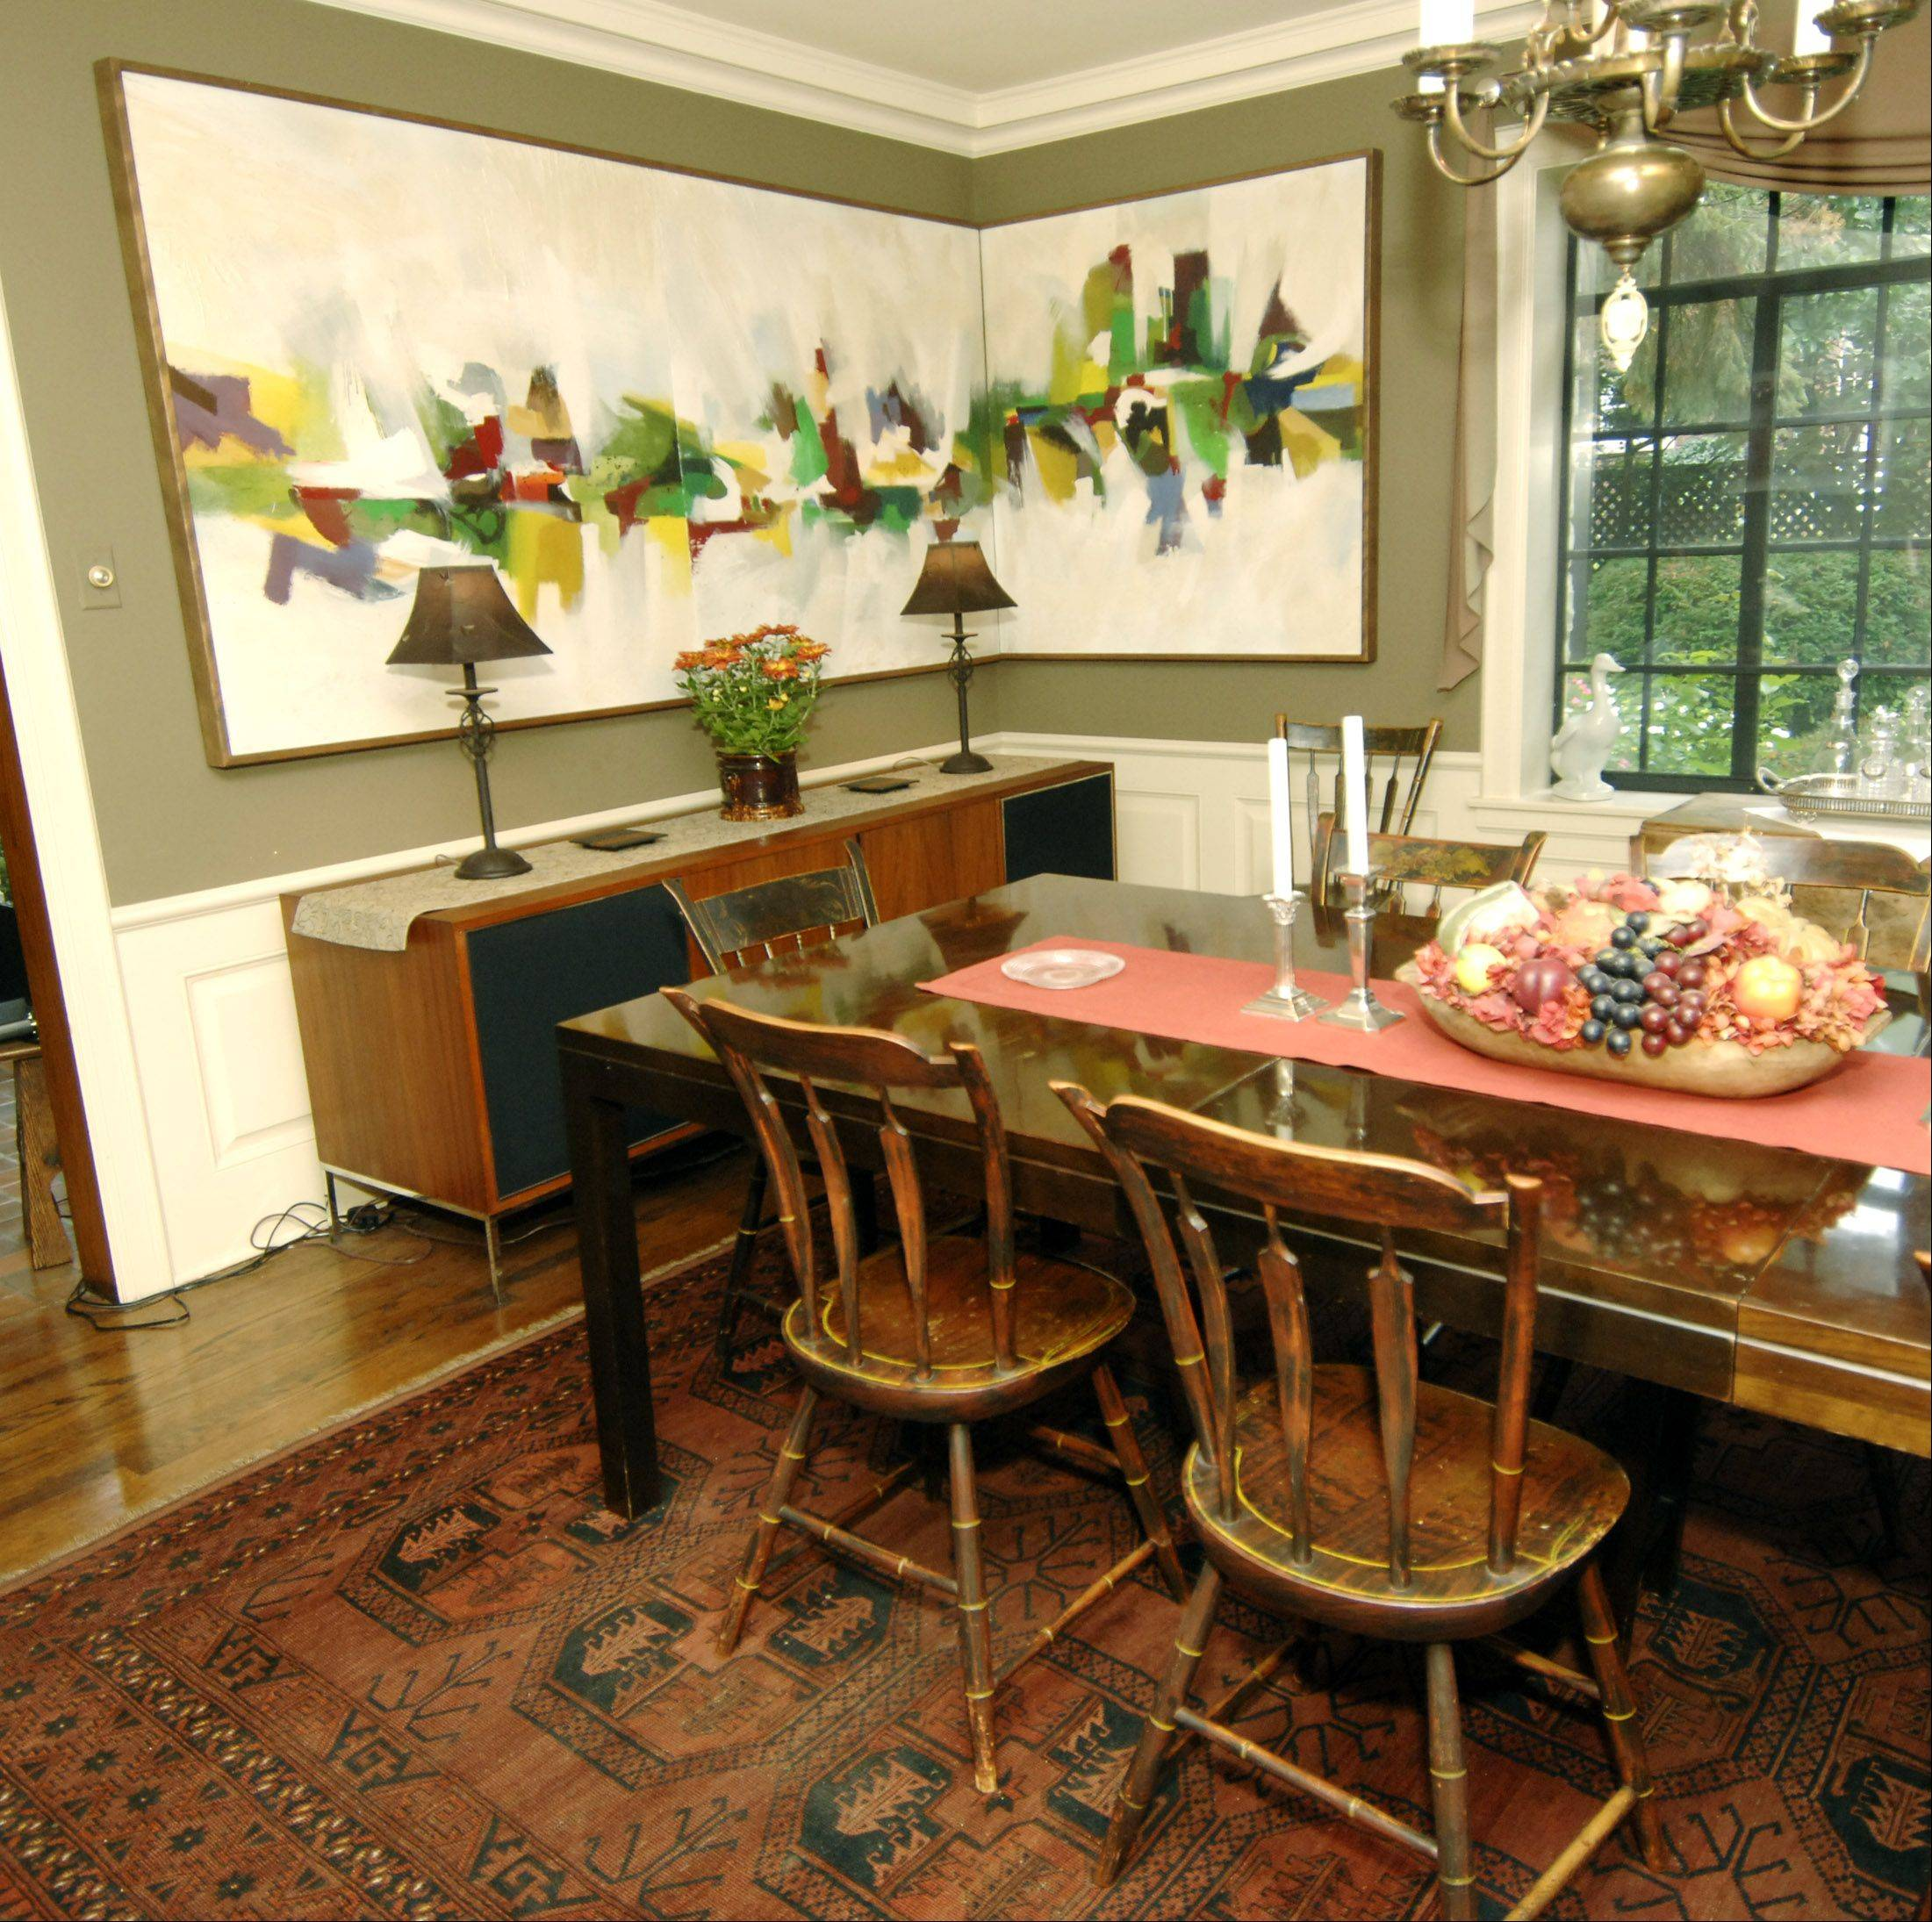 Early American Dining Room Furniture: LaGrange Couple Blends Early American And Modern Pieces To Create Own Style